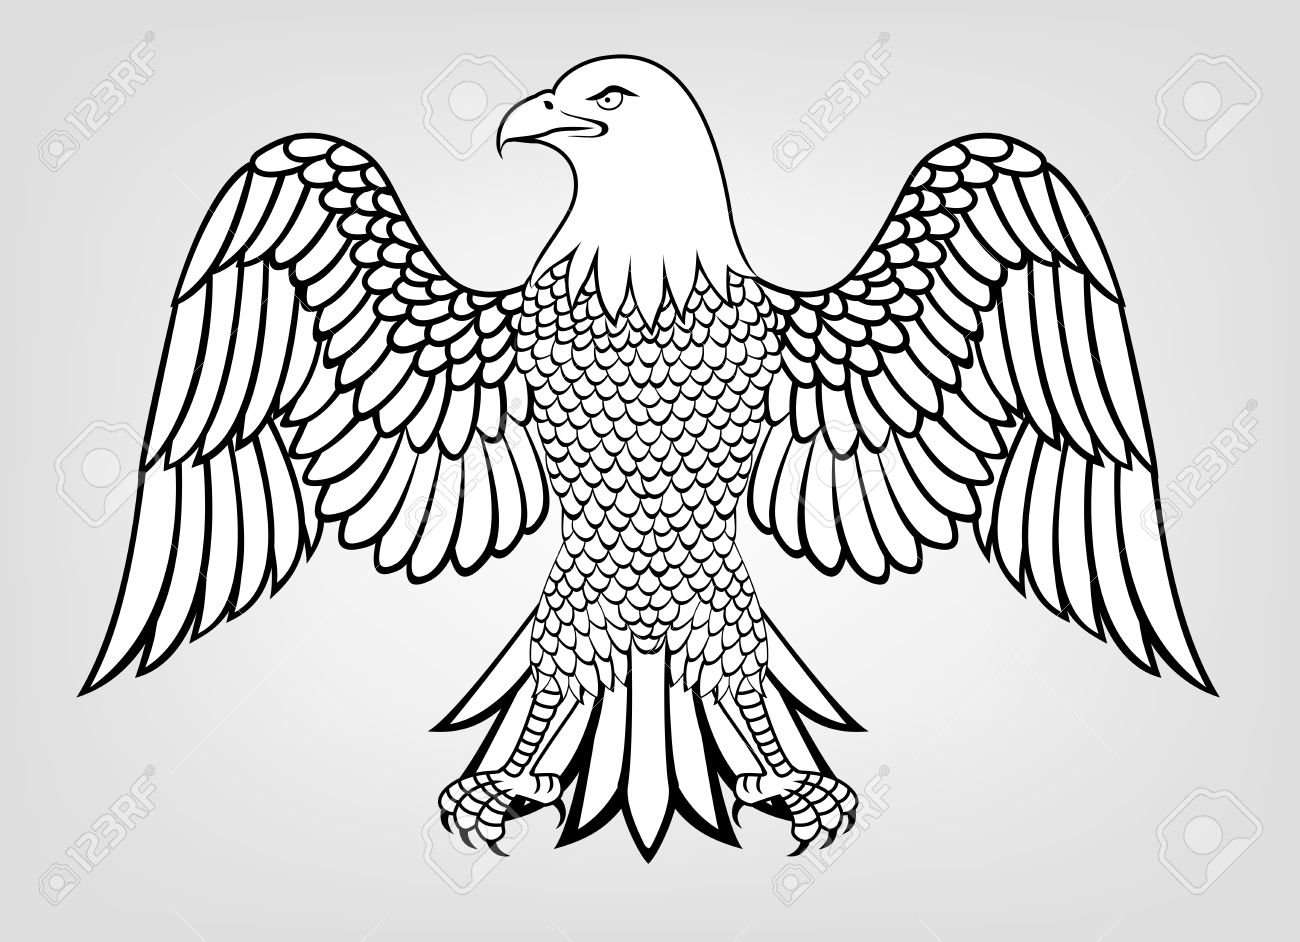 1300x942 Illustration Of Eagle Mascot Royalty Free Cliparts, Vectors,